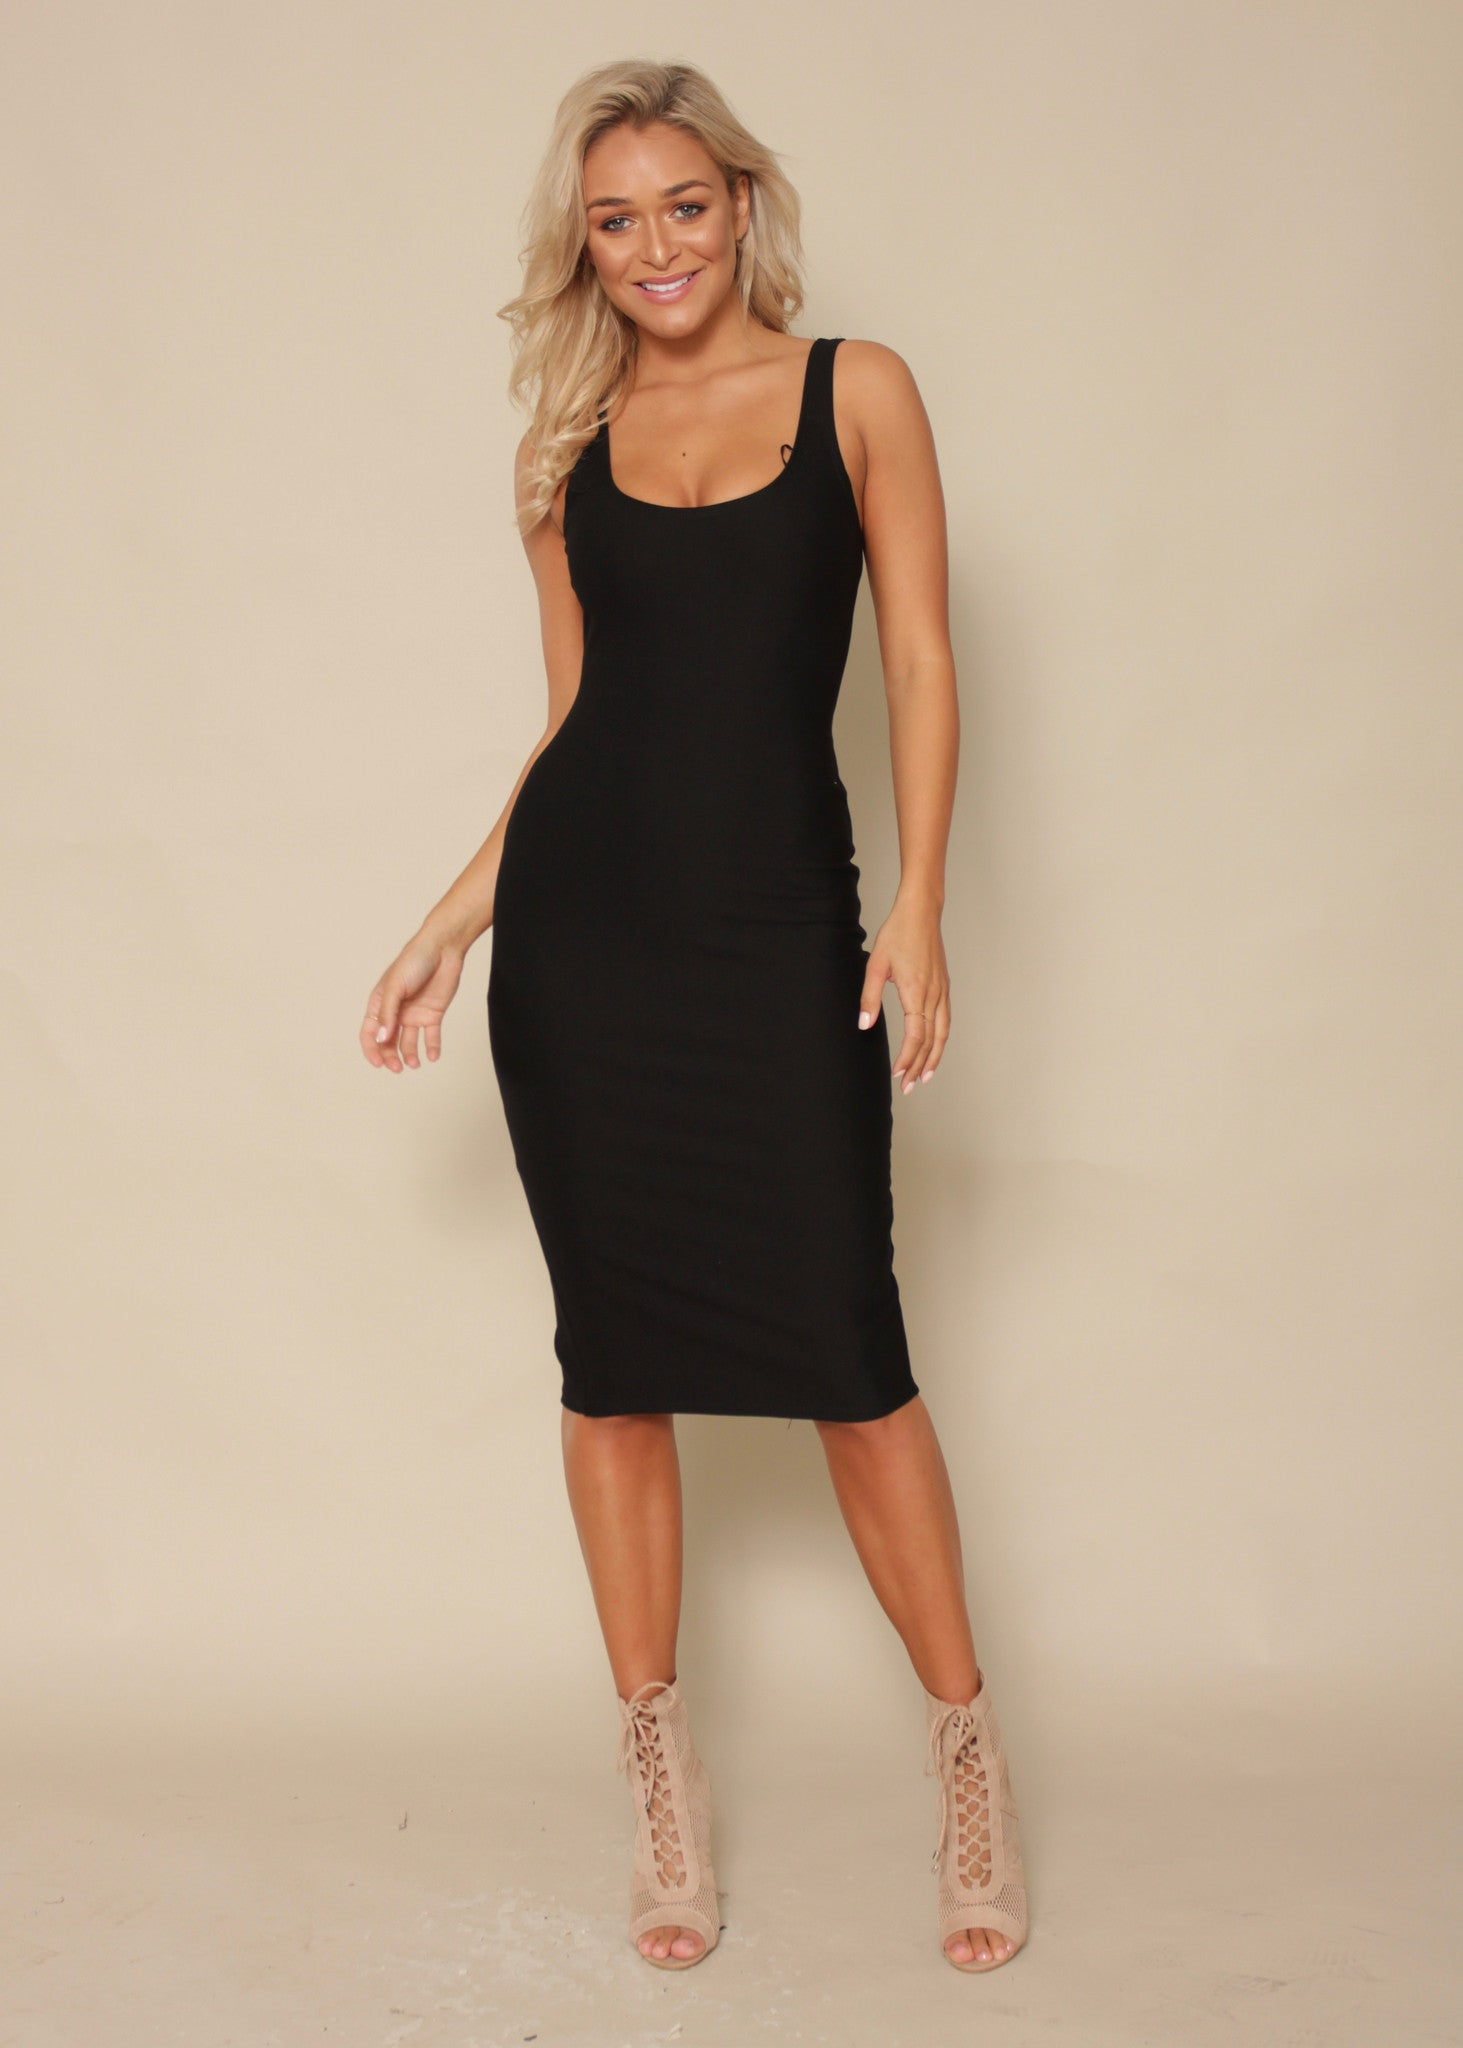 Say You Will Bodycon Dress - Black